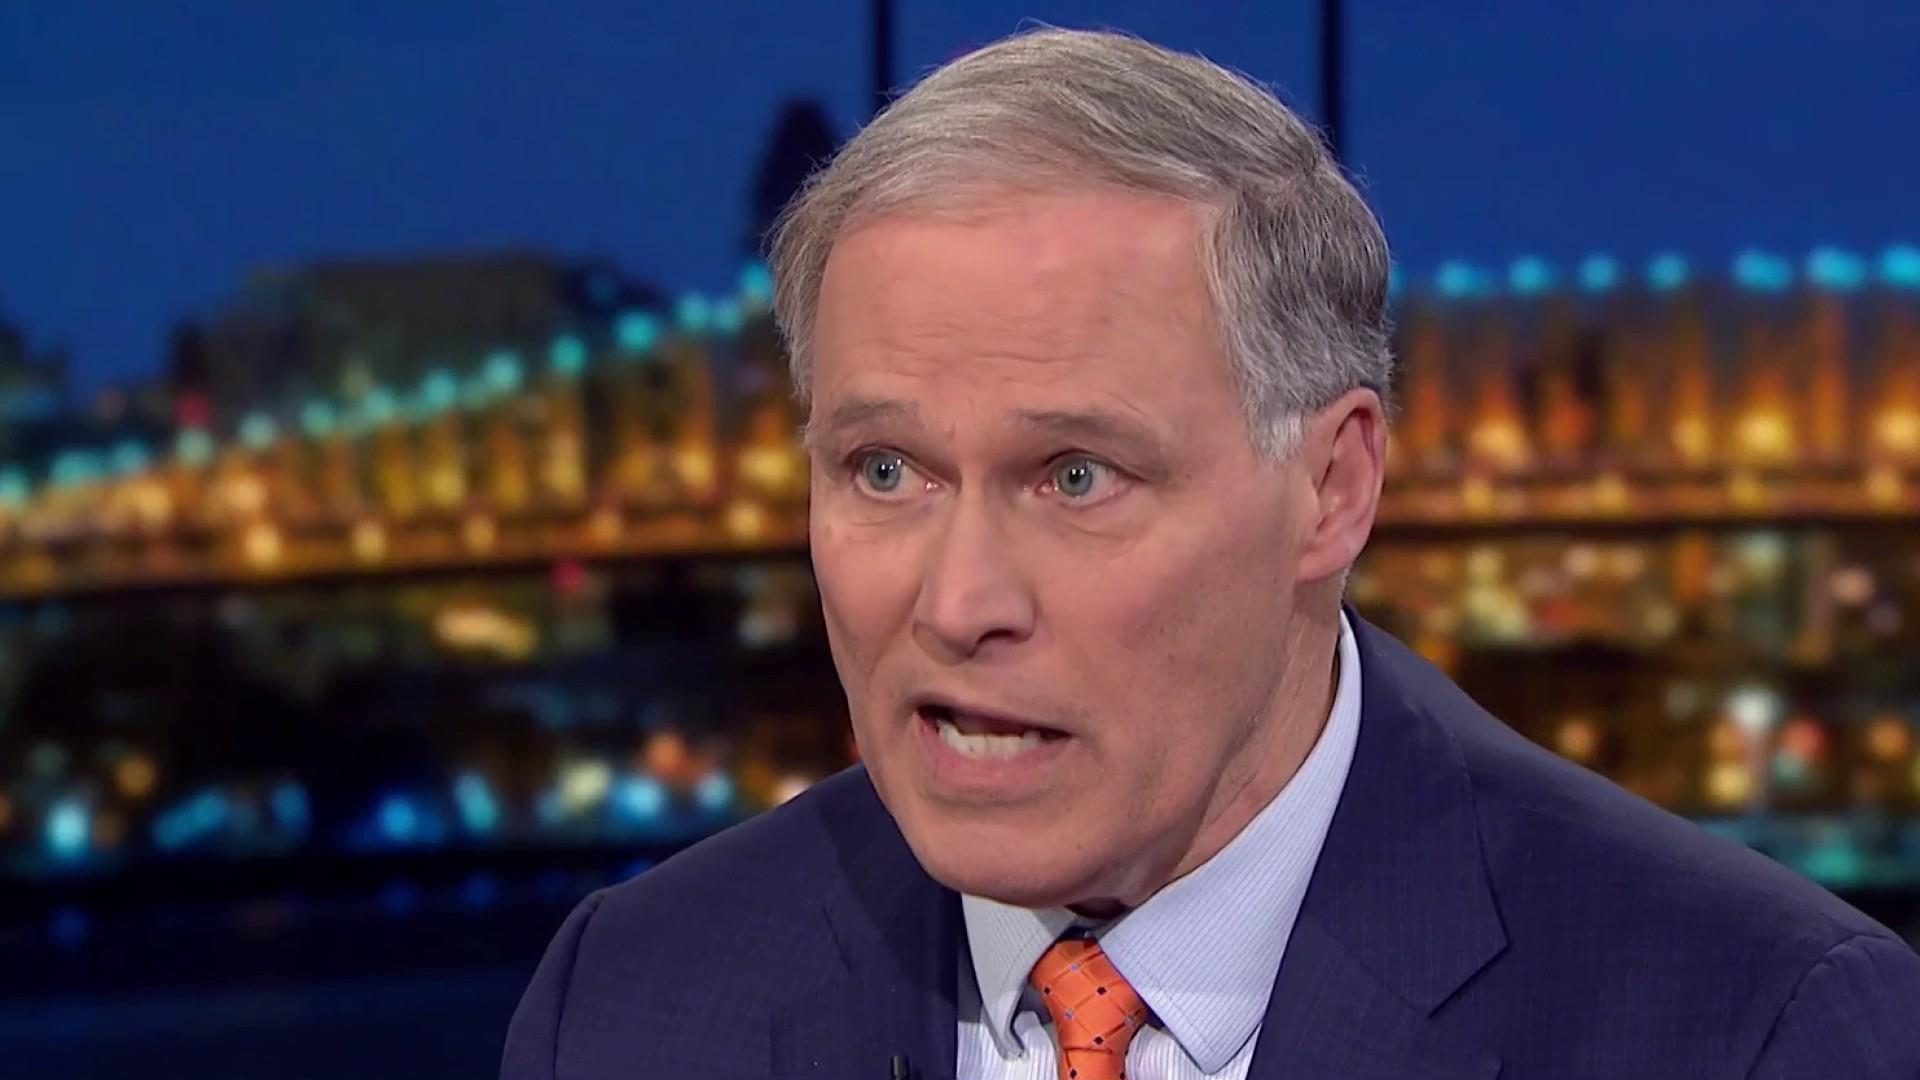 Gov. Inslee: Climate change is a 'true national emergency'